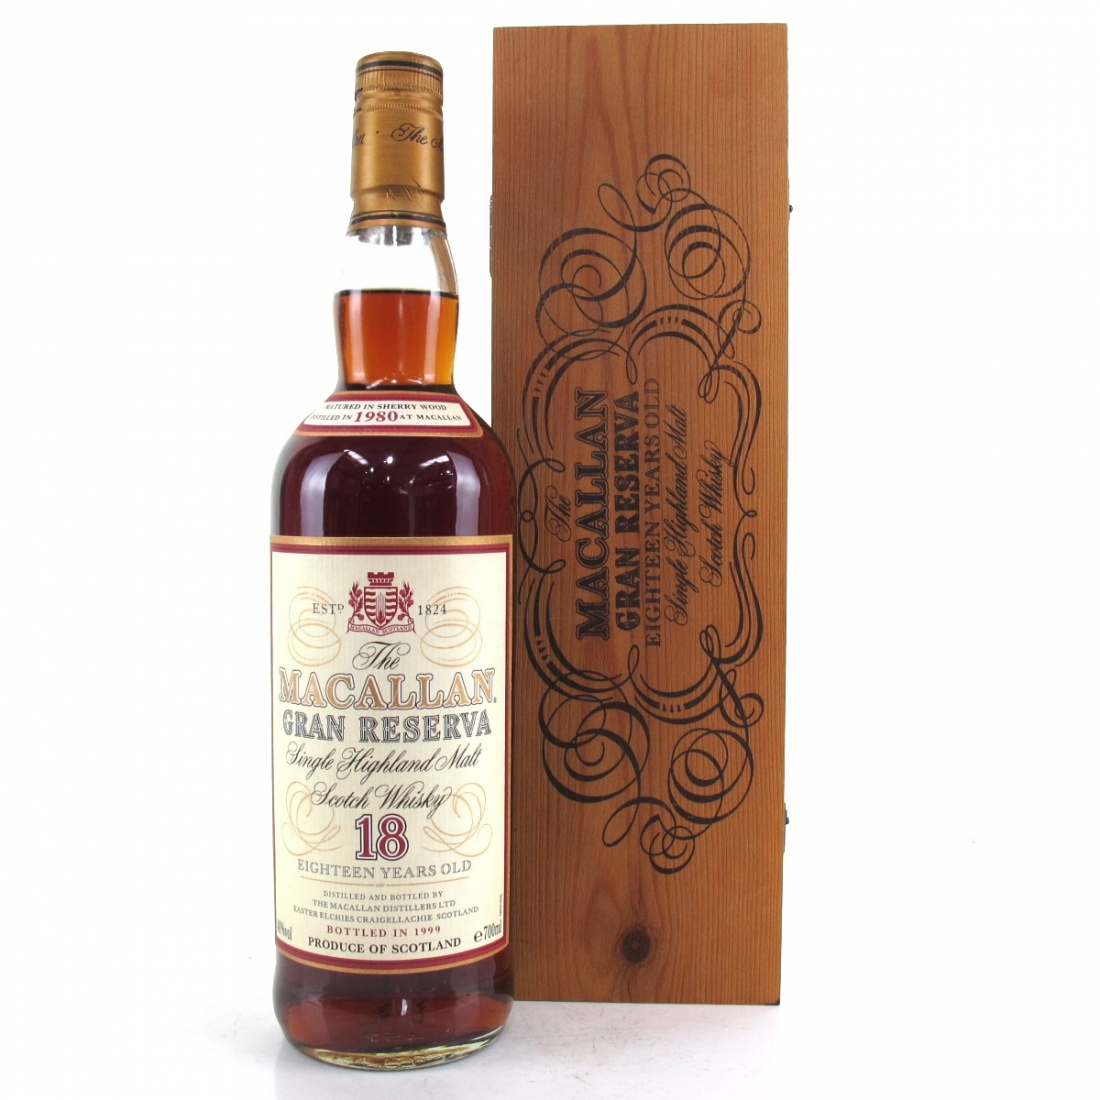 Macallan 1980 Gran Reserva 18 Year Old